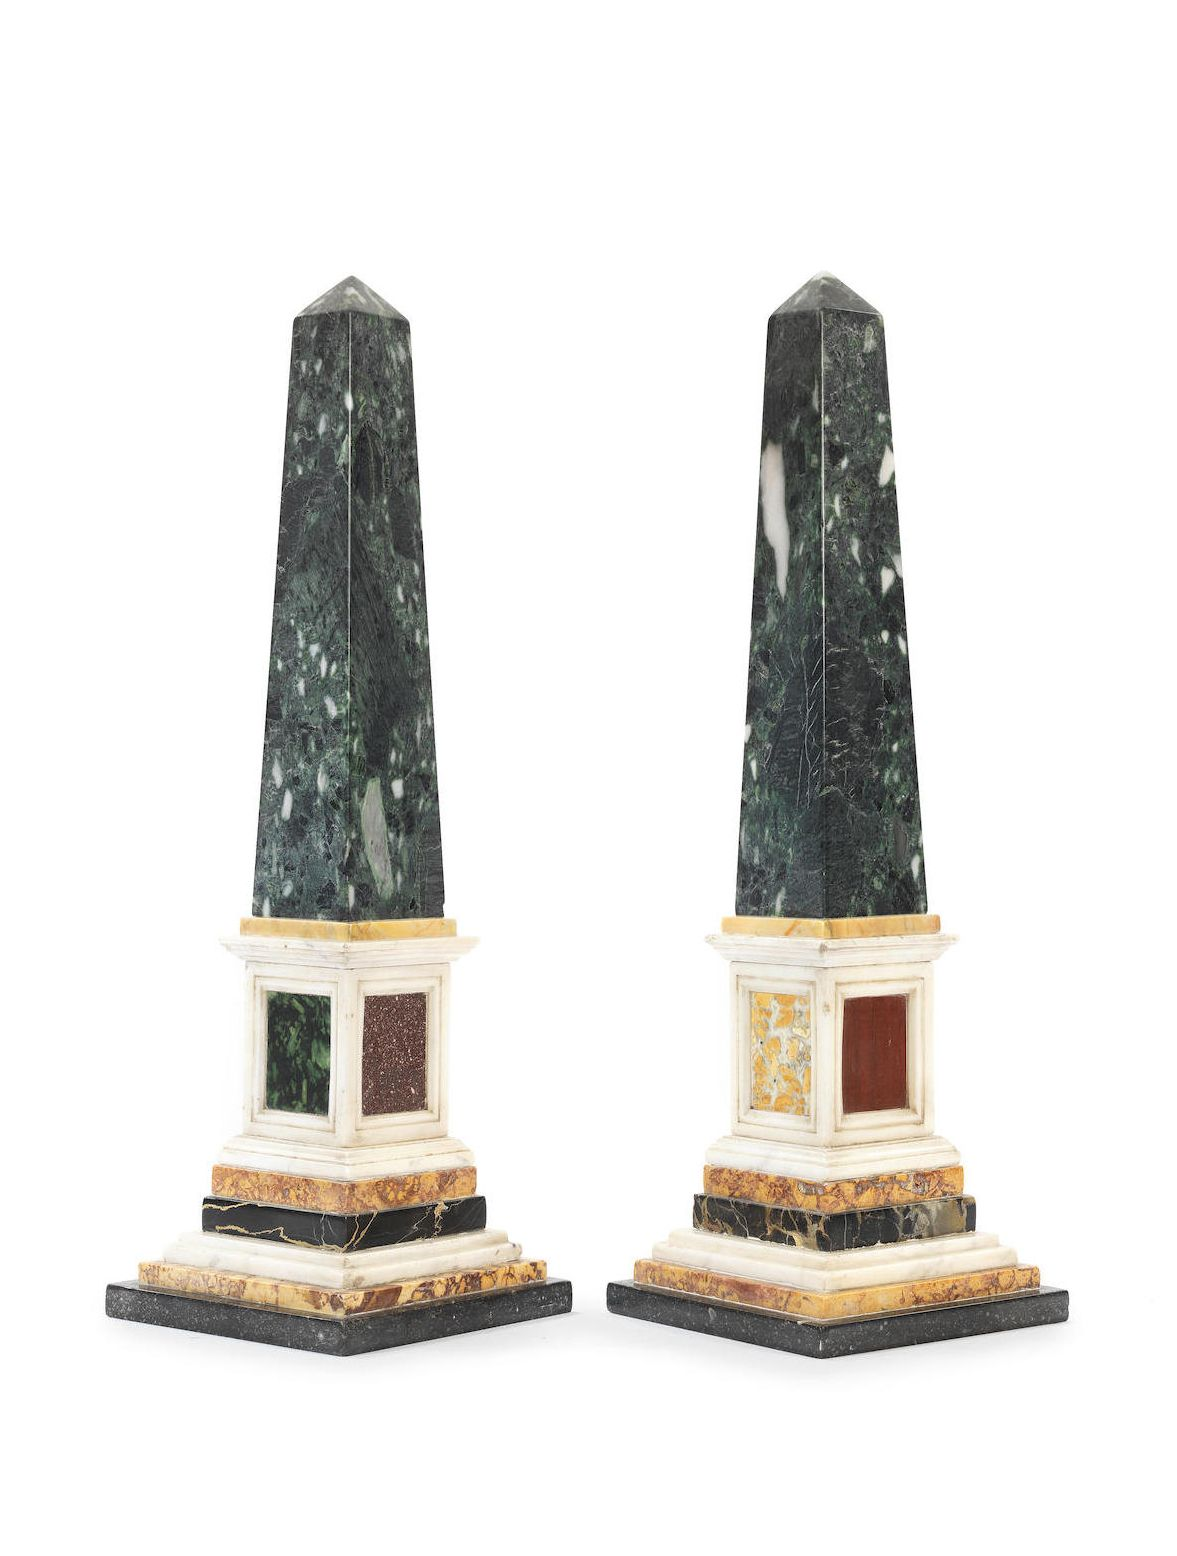 A Pair Of Decorative Specimen Marble Obelisks In The 19th Century Style The Tapering Verde Antico Shafts On White Sienna Yellow And Other Coloured Marble Mould